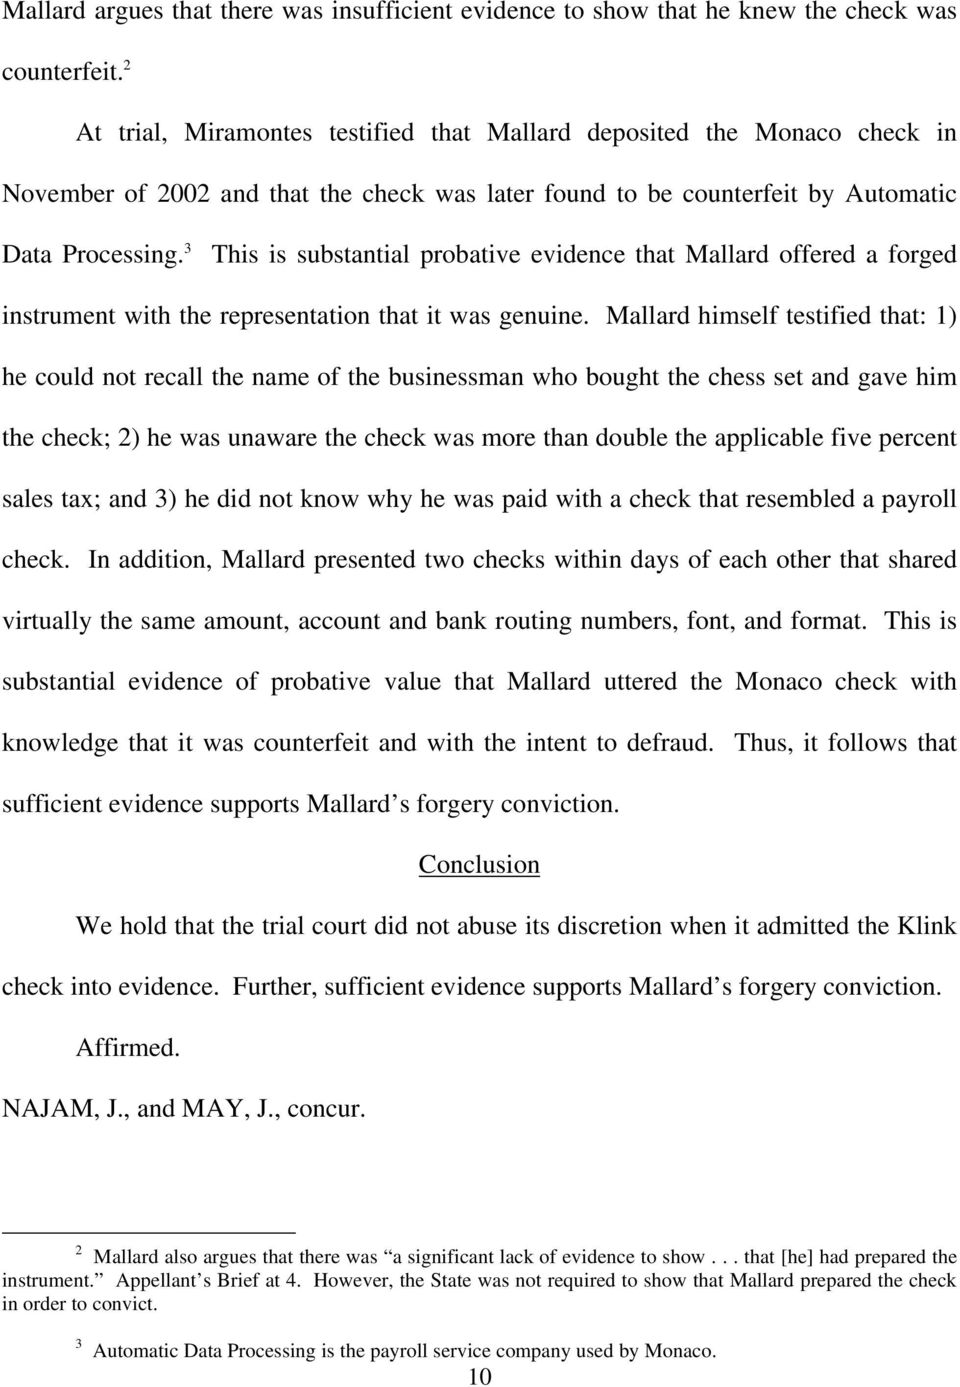 3 This is substantial probative evidence that Mallard offered a forged instrument with the representation that it was genuine.